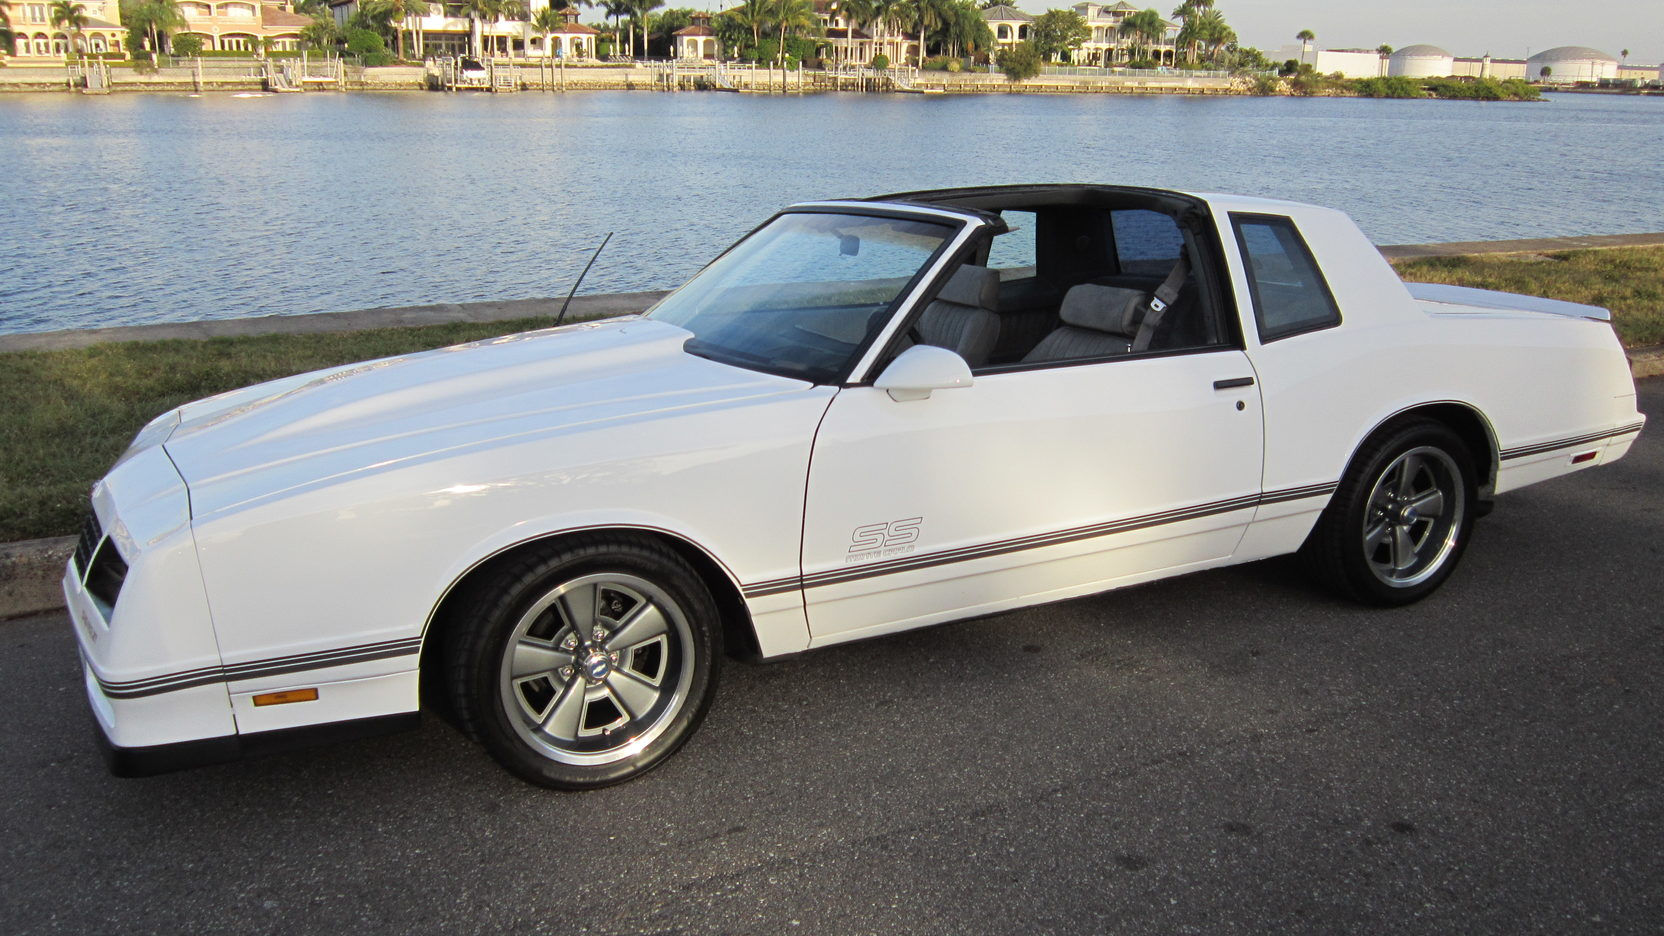 1986 Chevrolet Monte Carlo SS front 3/4